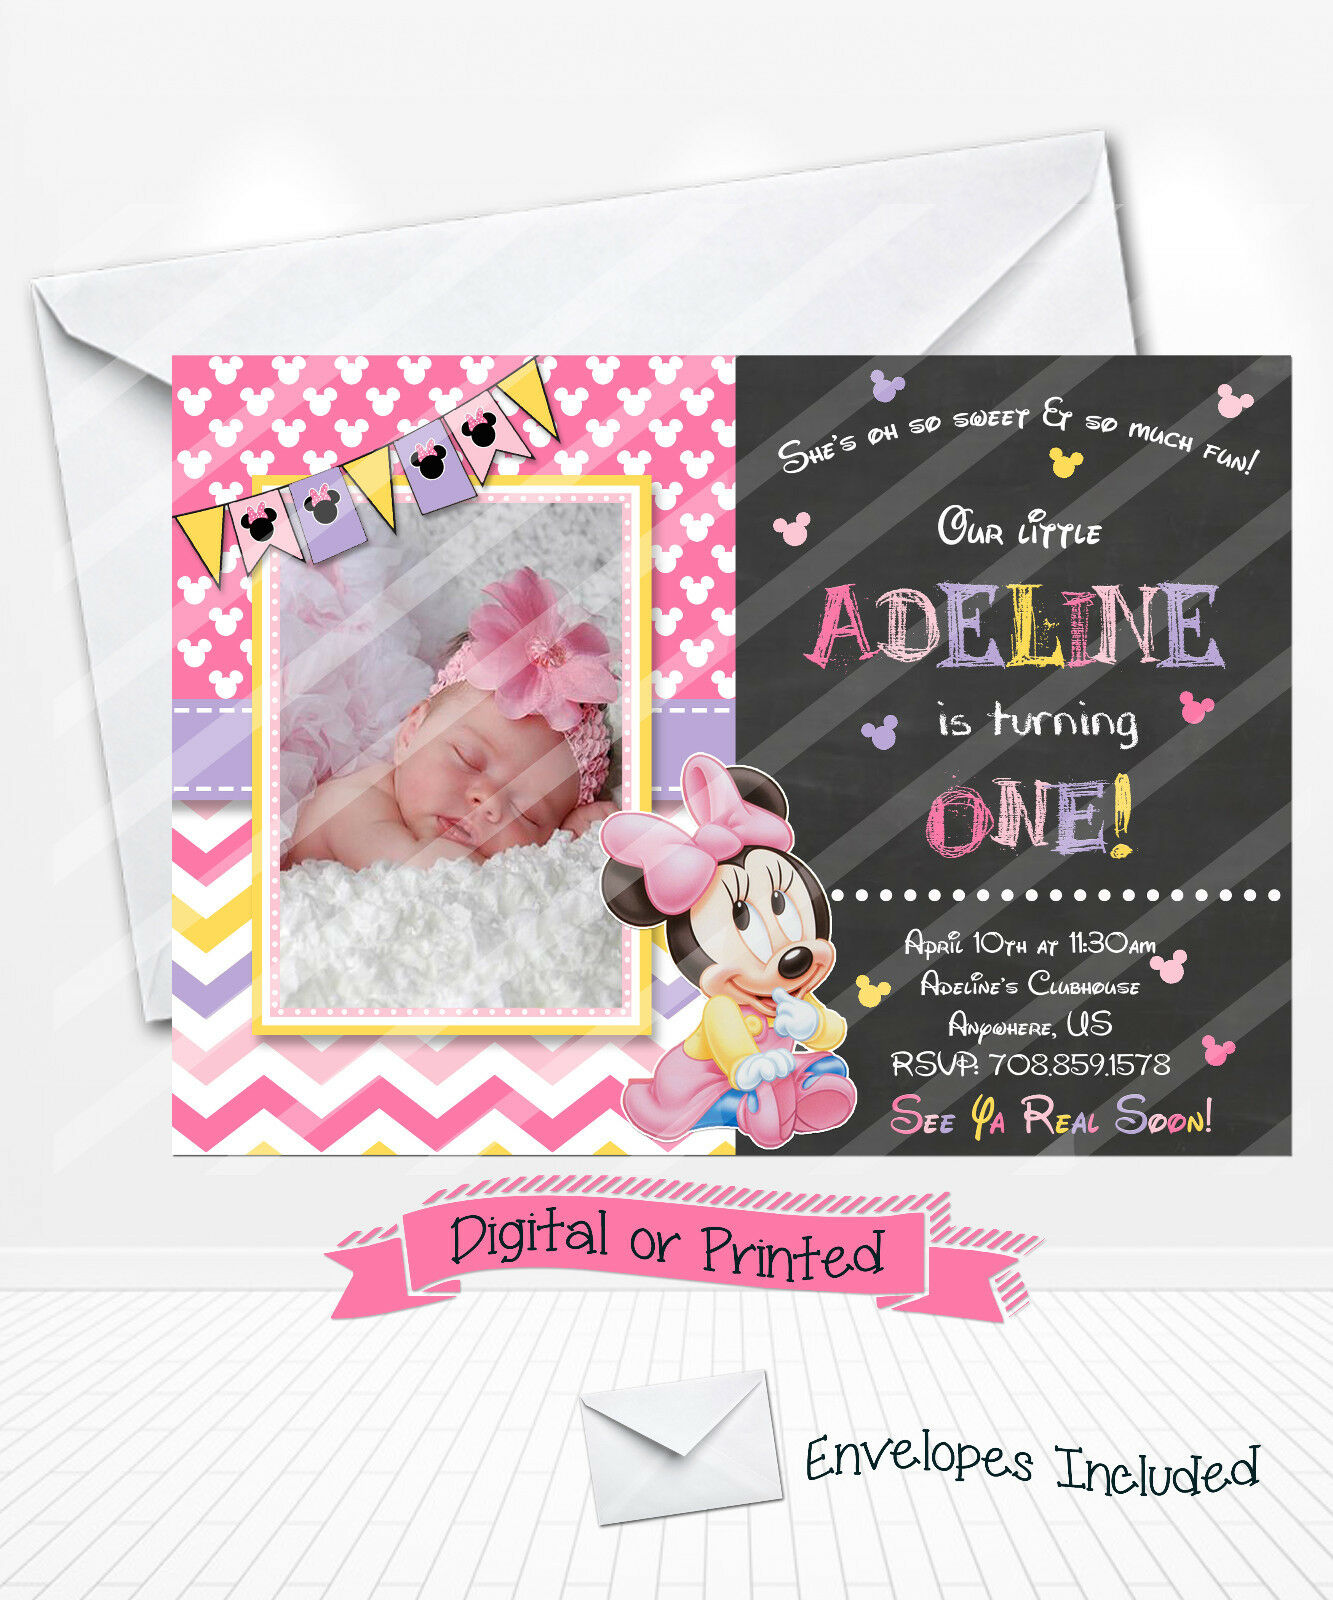 Printed baby minnie mouse 1st birthday invitations pink minnie party printed baby minnie mouse 1st birthday invitations pink minnie party invitations 1 of 1only 4 available filmwisefo